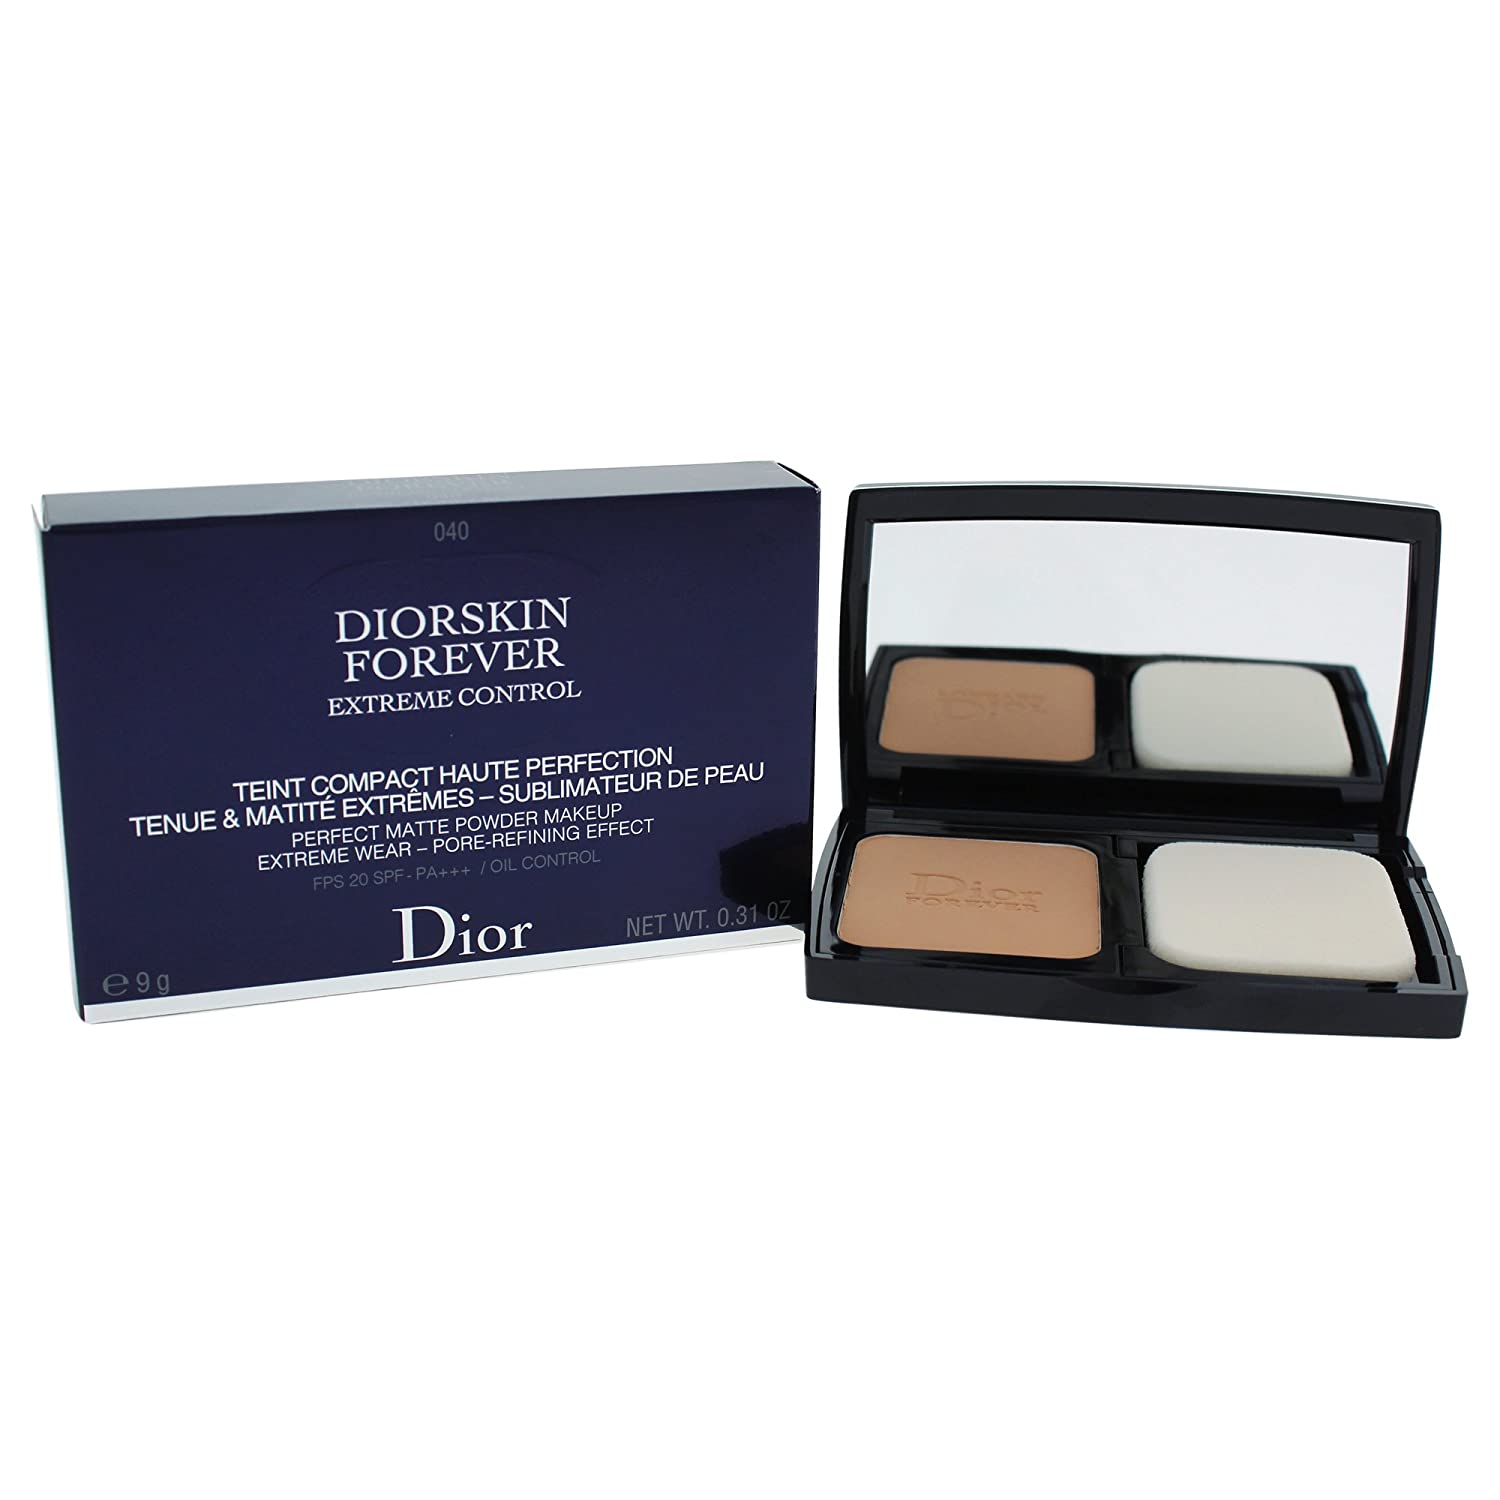 Christian Dior Diorskin Forever Extreme Control Matte Powder Makeup SPF 20 Foundation for Women, Honey Beige, 0.31 Ounce